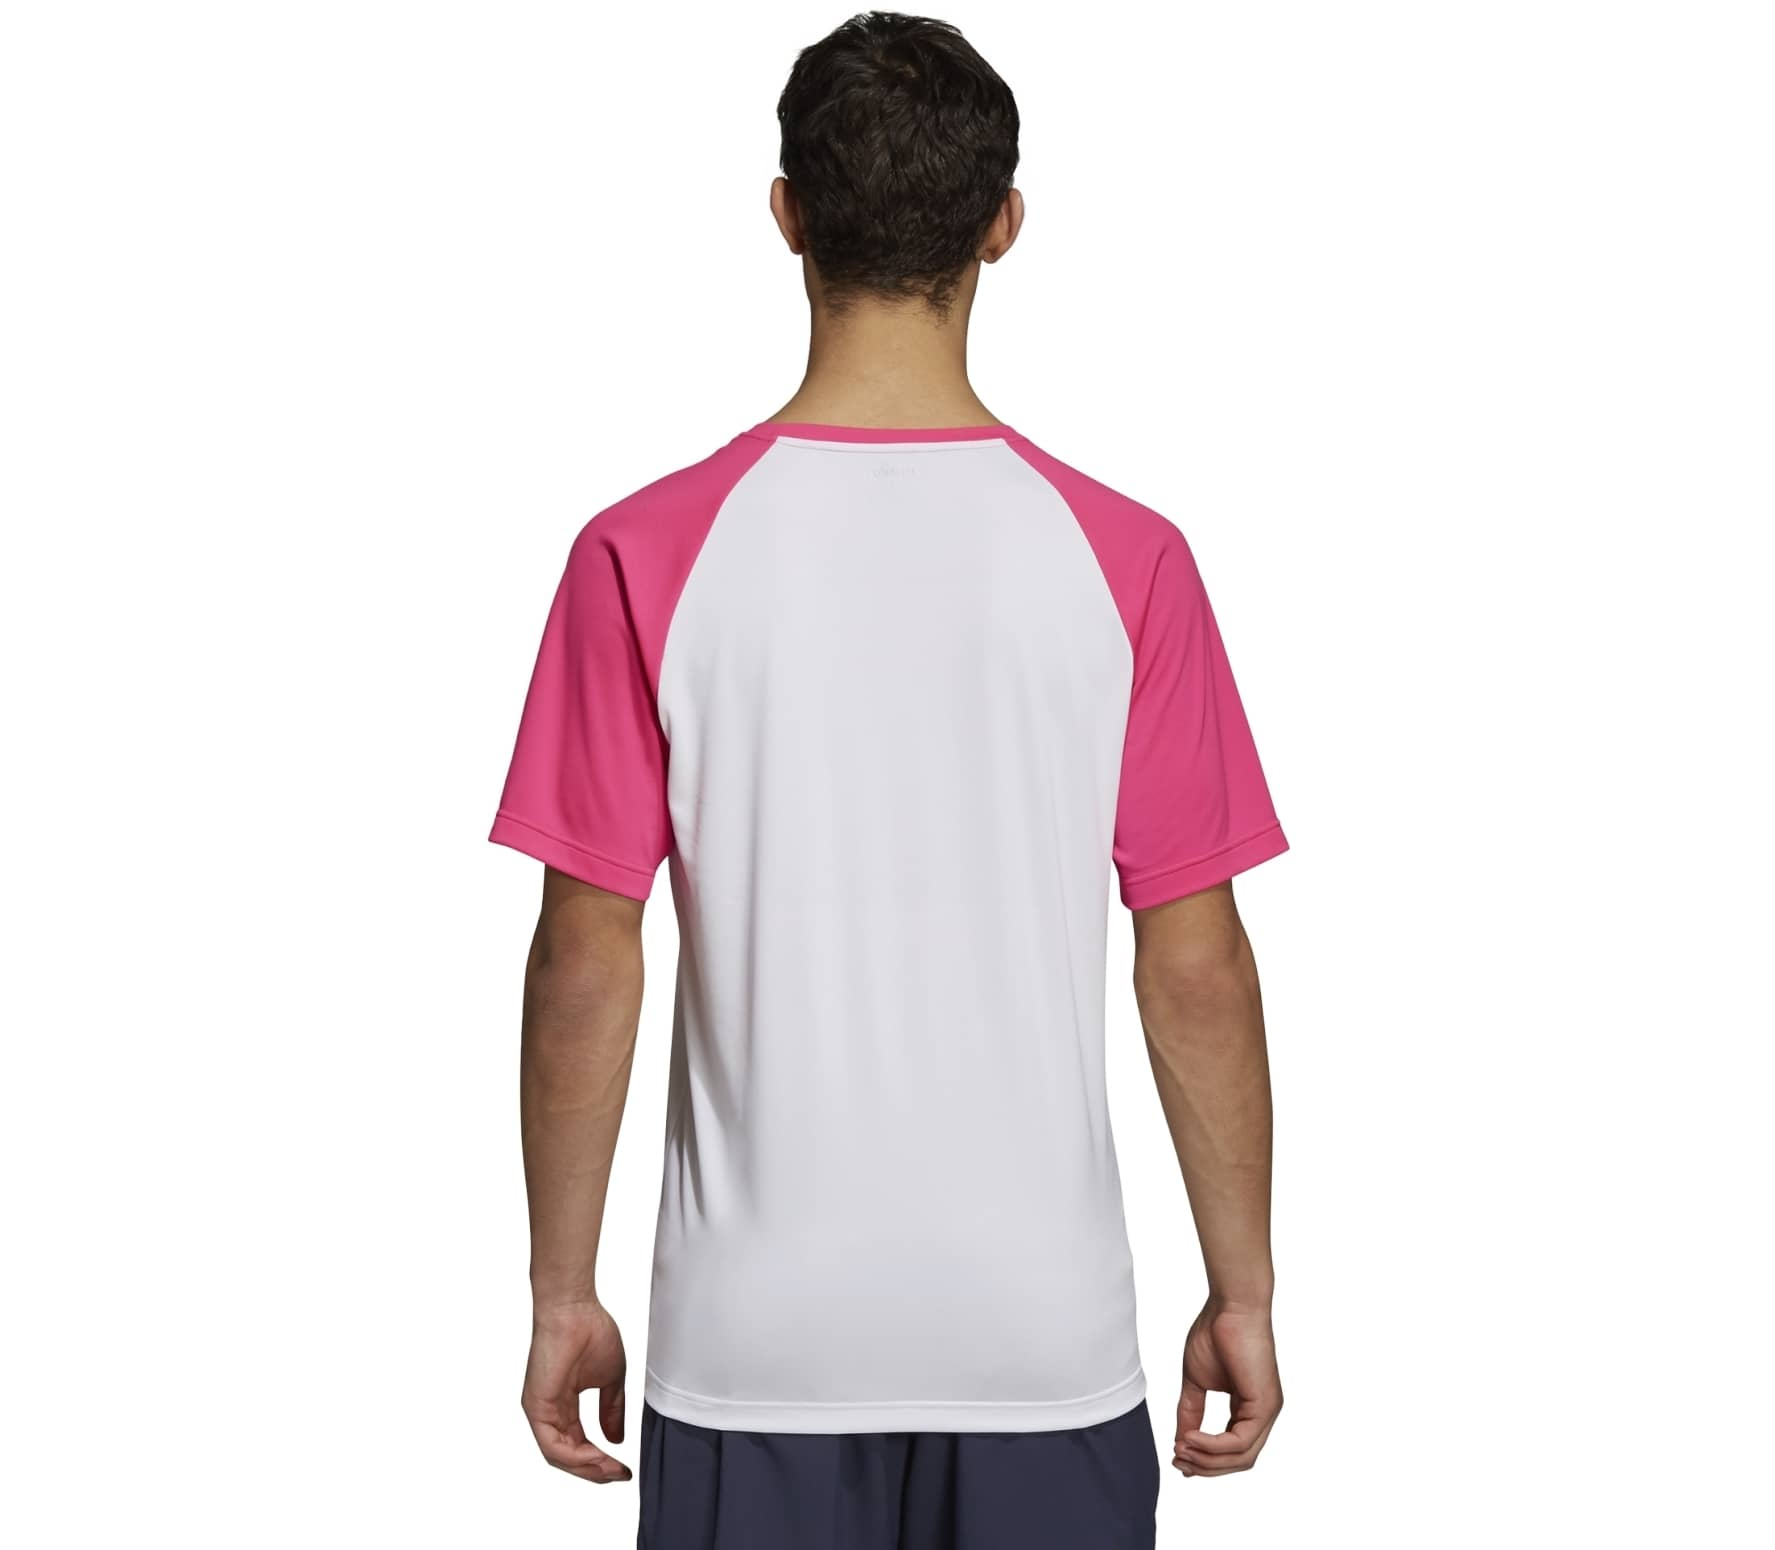 f160bd855ec9 adidas performance - Club Color Block Hommes Tennis chemise (rose)